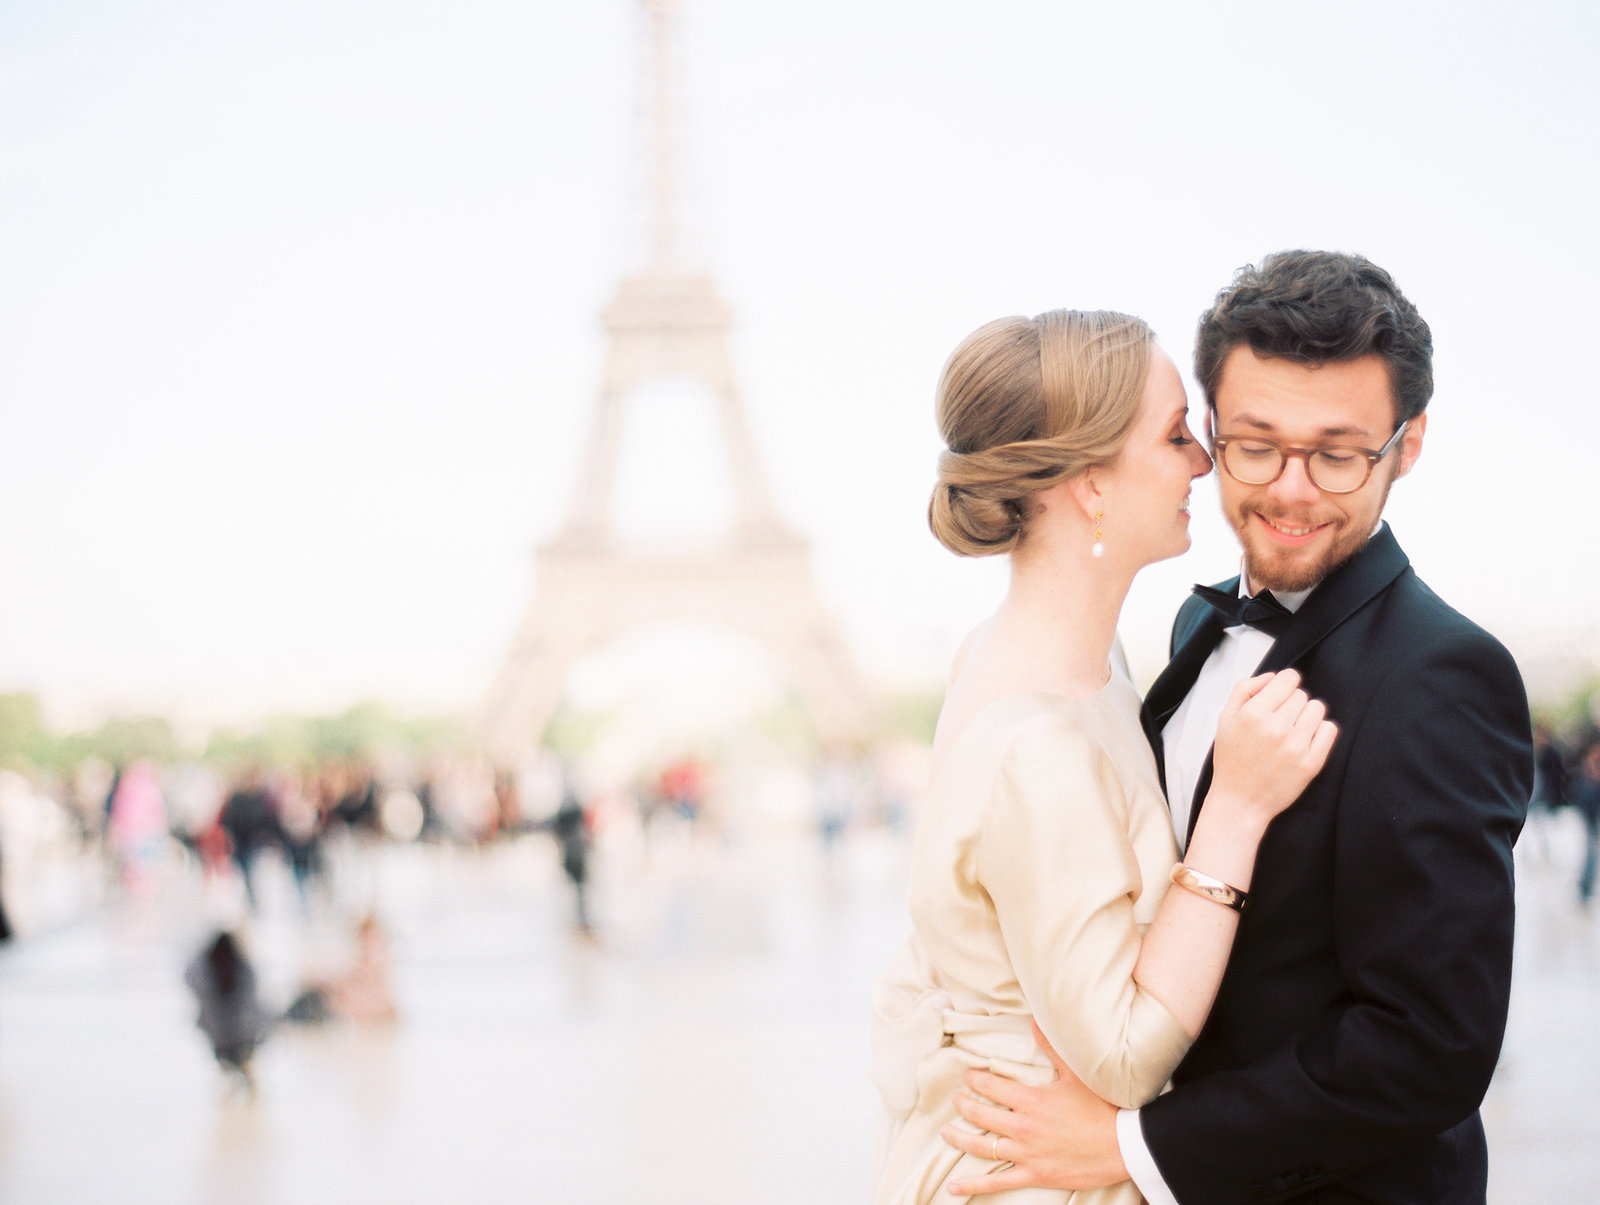 A styled wedding phtoo shoot in Paris France